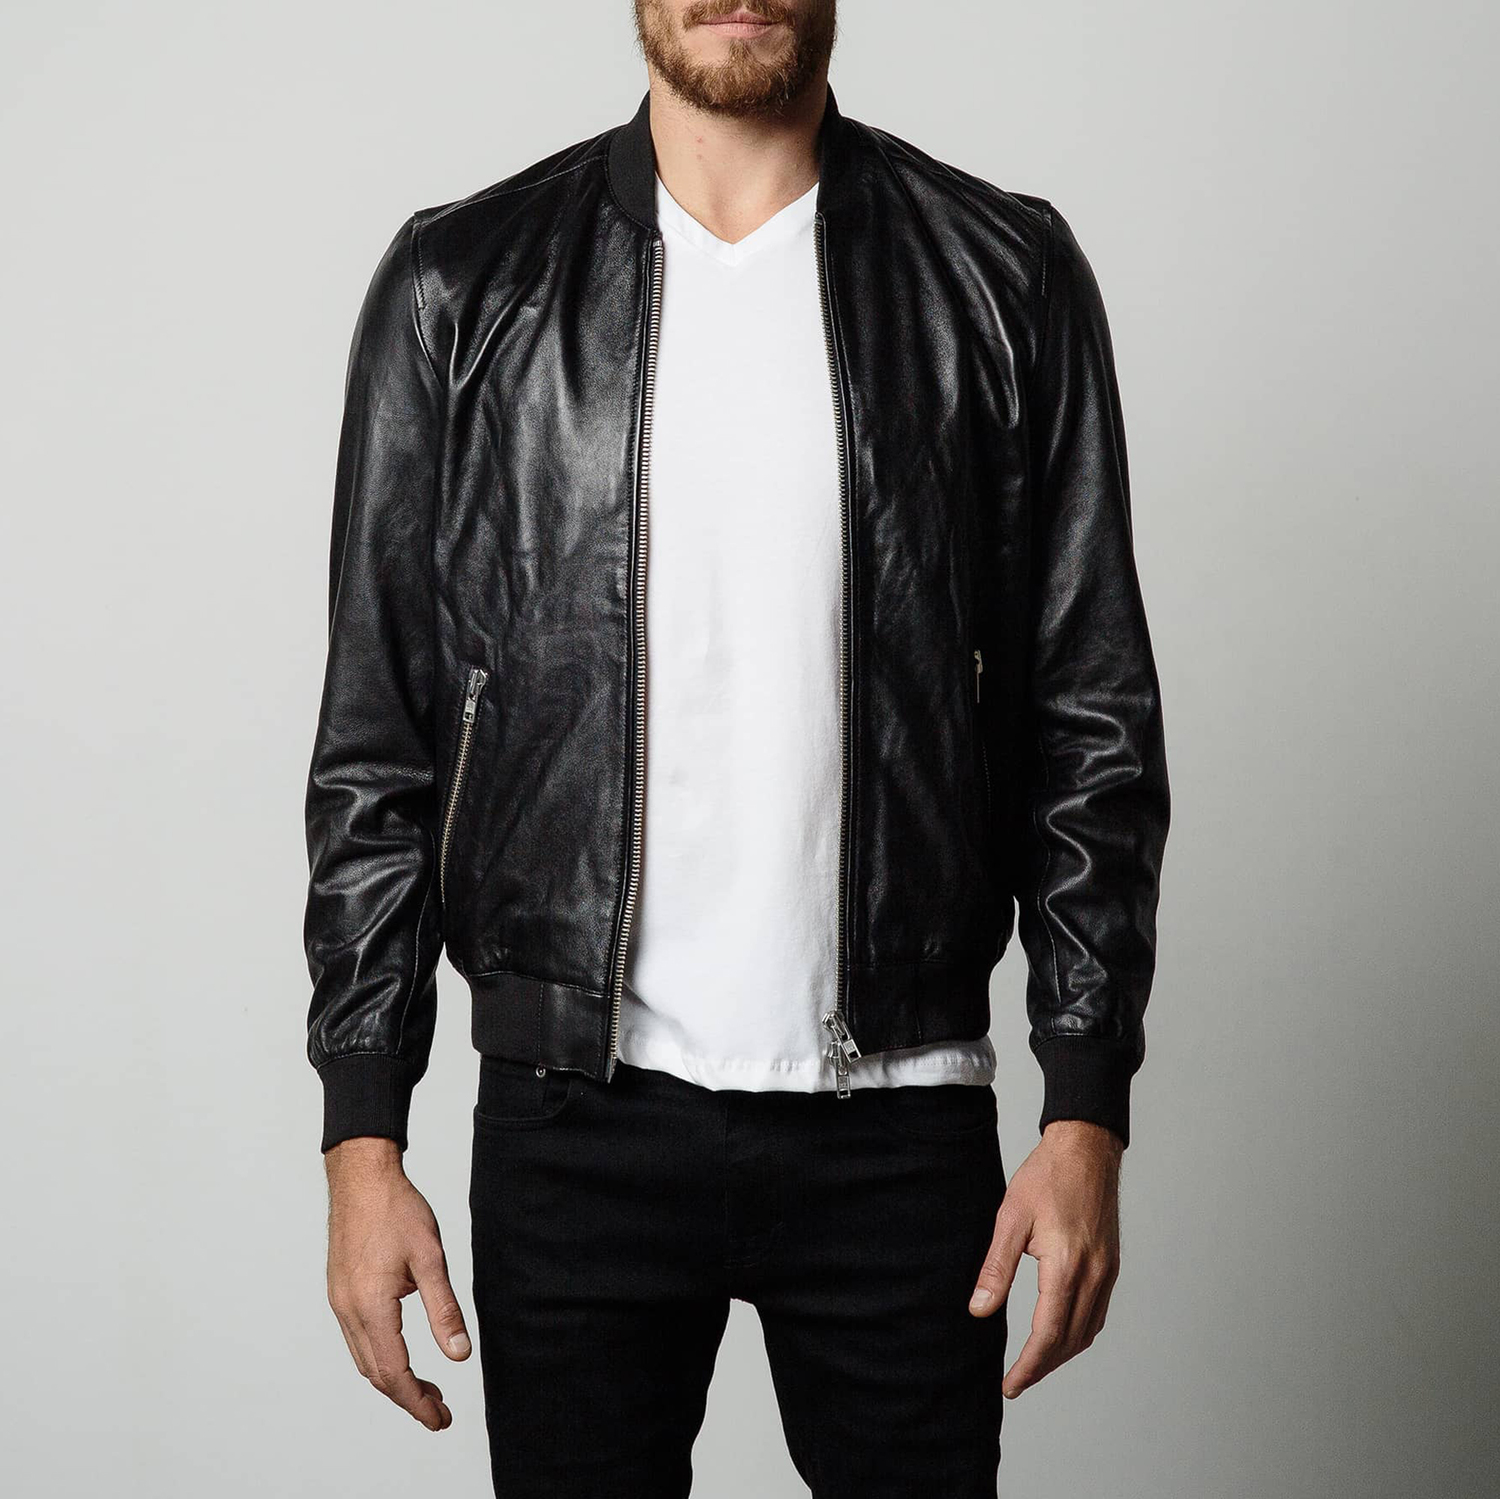 The great thing about a leather jacket — particularly a leather jacket with the versatility of a classic bomber silhouette — is that sense of classic cool it gives the wearer. That's absolutely the case with the Leather Bomber Jacket from Belstaff, yet another worthwhile .